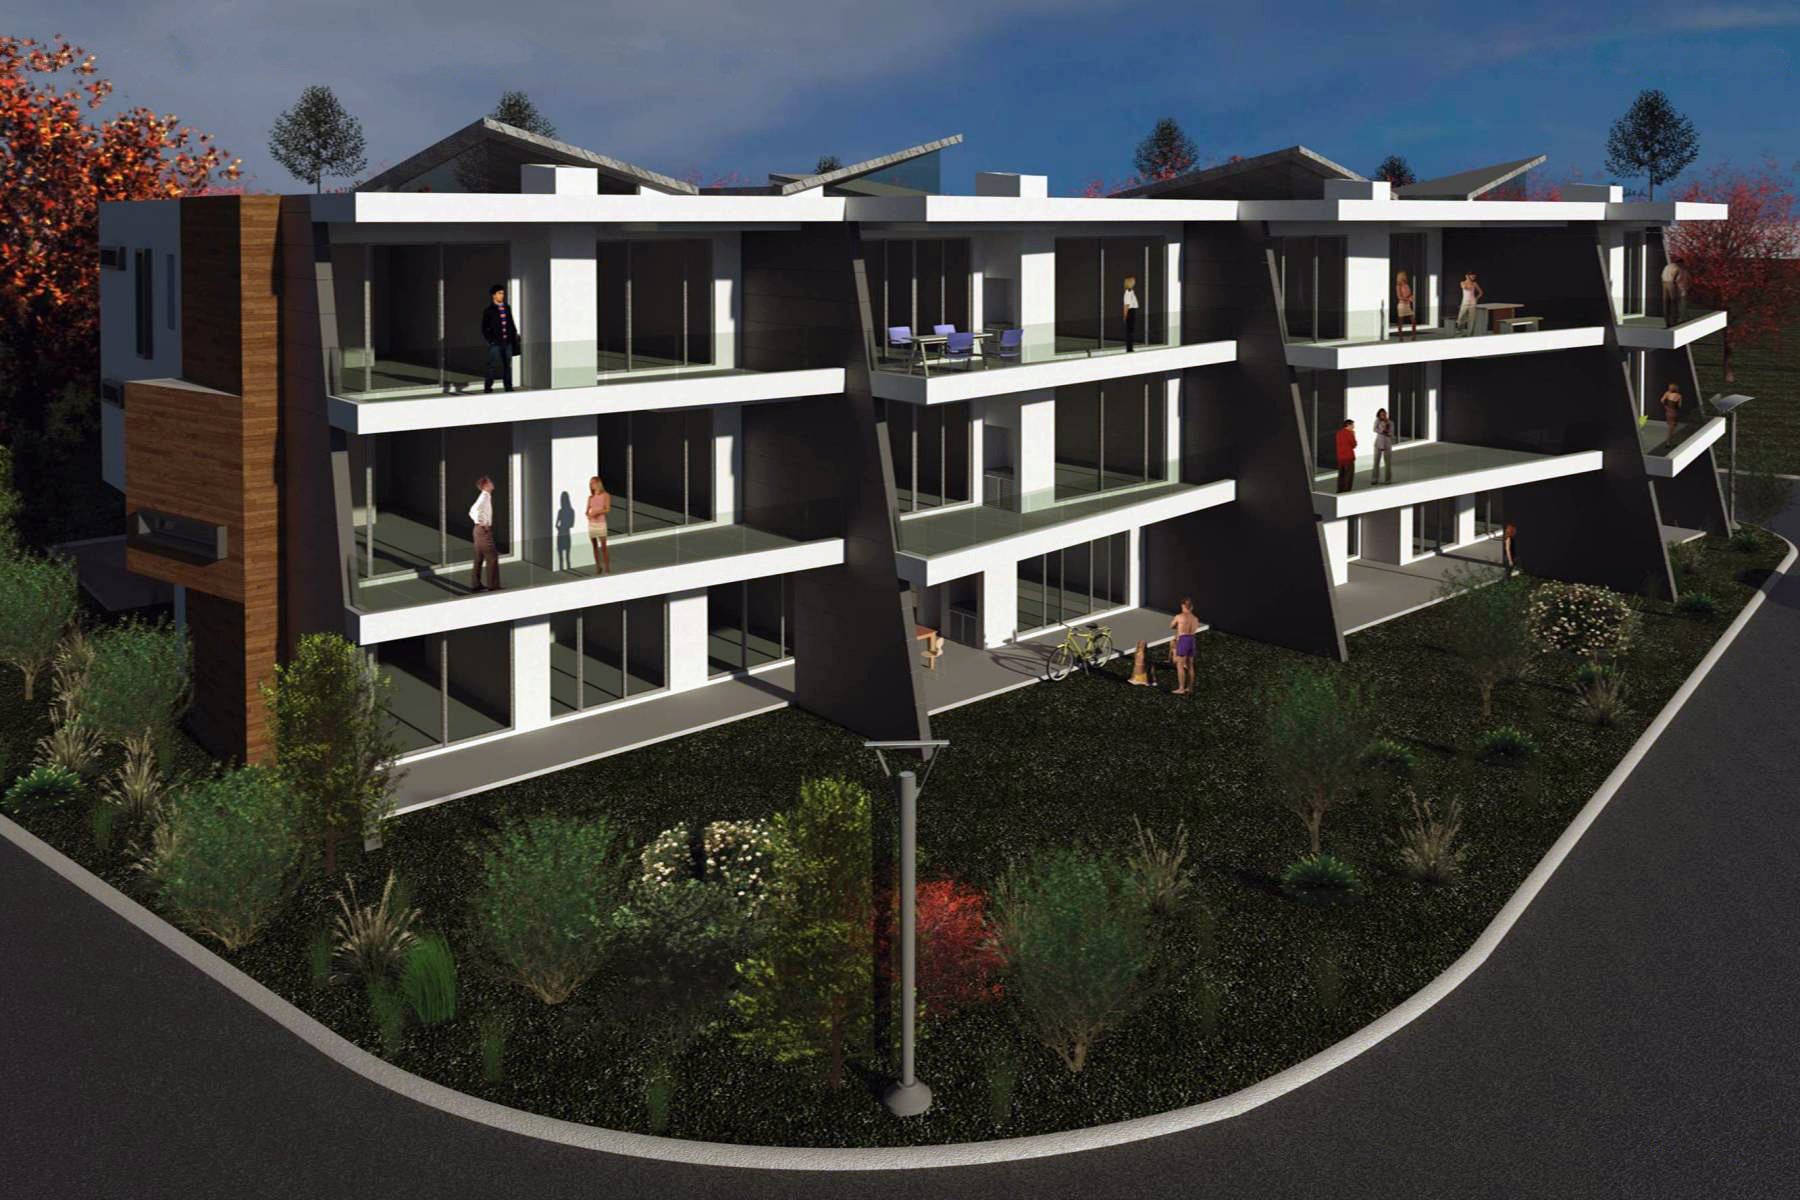 Apartment for Sale at Modern Secure Living at Thulana Hill Thulana Hill Phase 2 Unit 1 Marine Way, Plettenberg Bay, Western Cape, 6600 South Africa